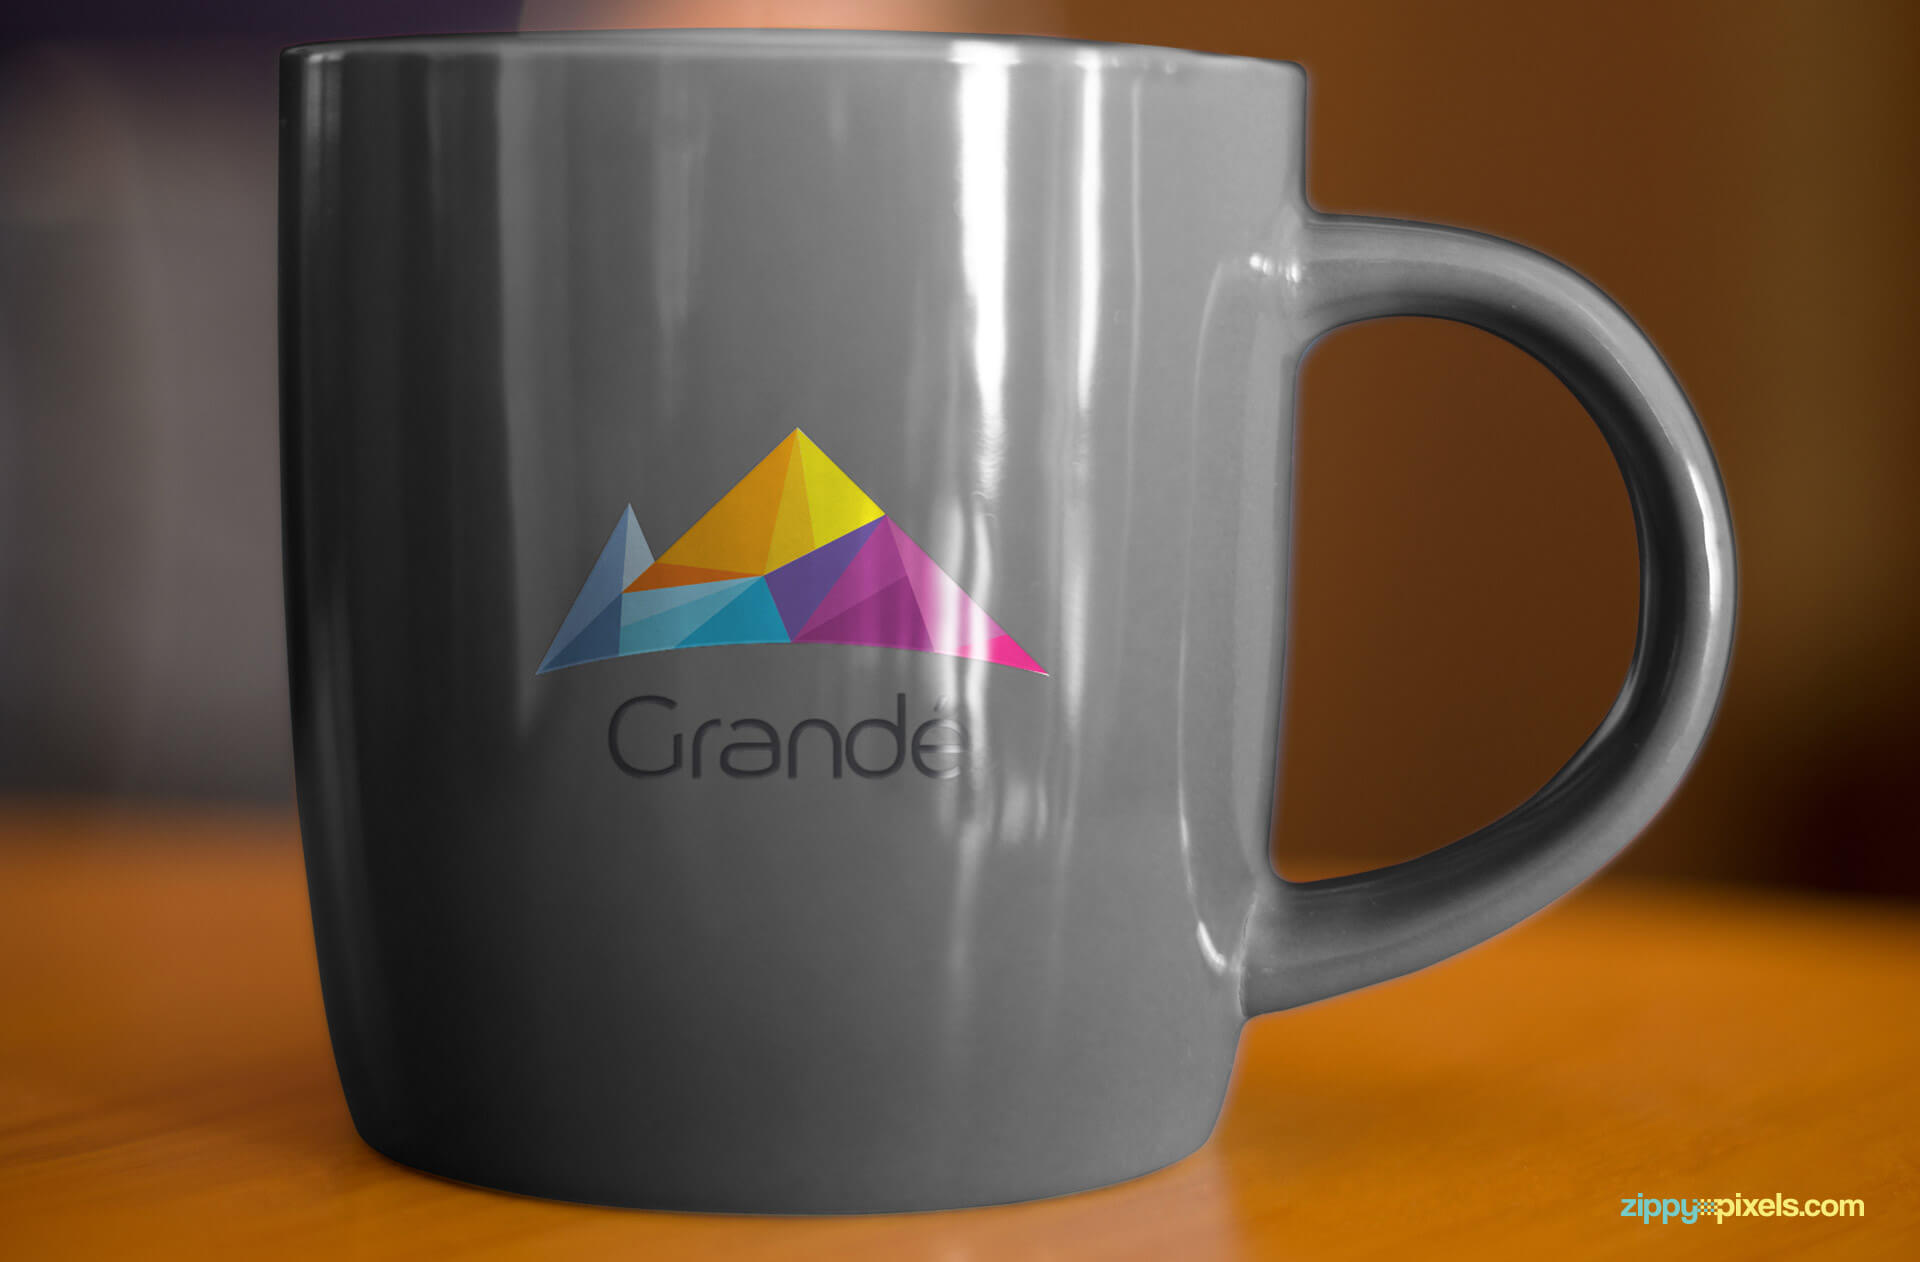 Branding Mockup for Coffee Mug with Logo